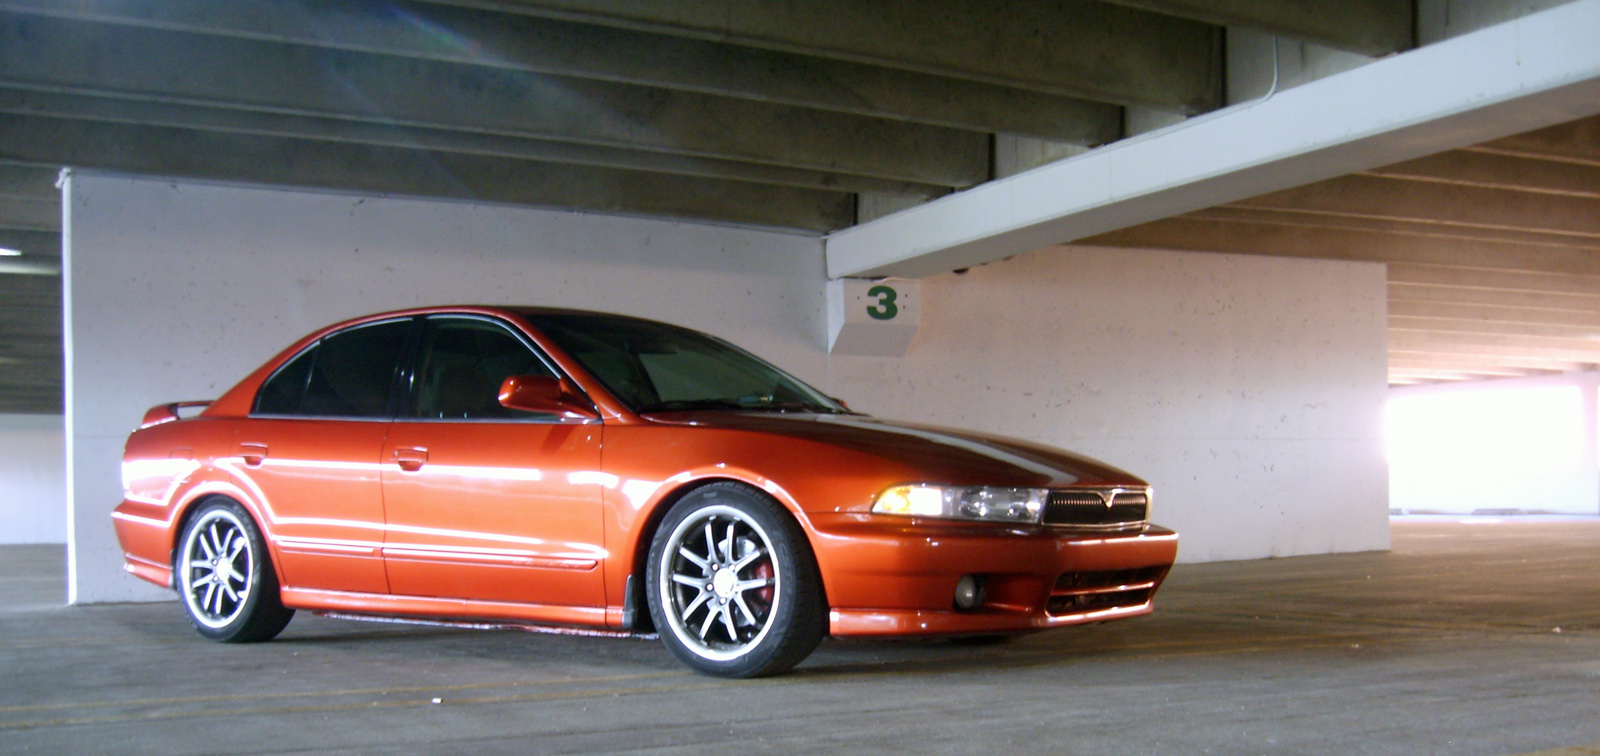 Chrysler galant photo - 4